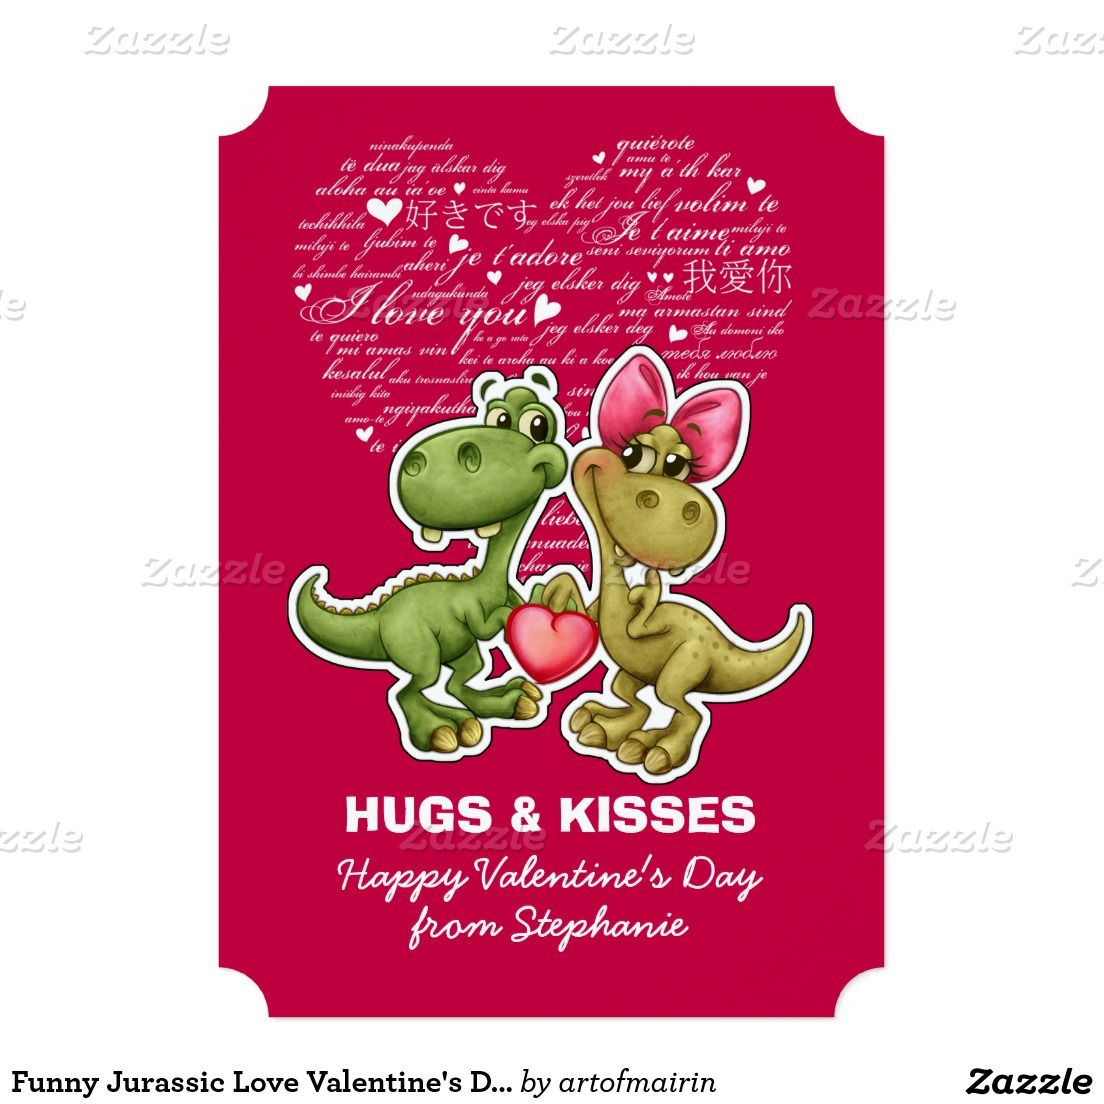 Funny dinosaurs jurassic love valentines day flat greeting cards funny dinosaurs jurassic love valentines day flat greeting cards with customizable greeting matching cards in various languages postage stam m4hsunfo